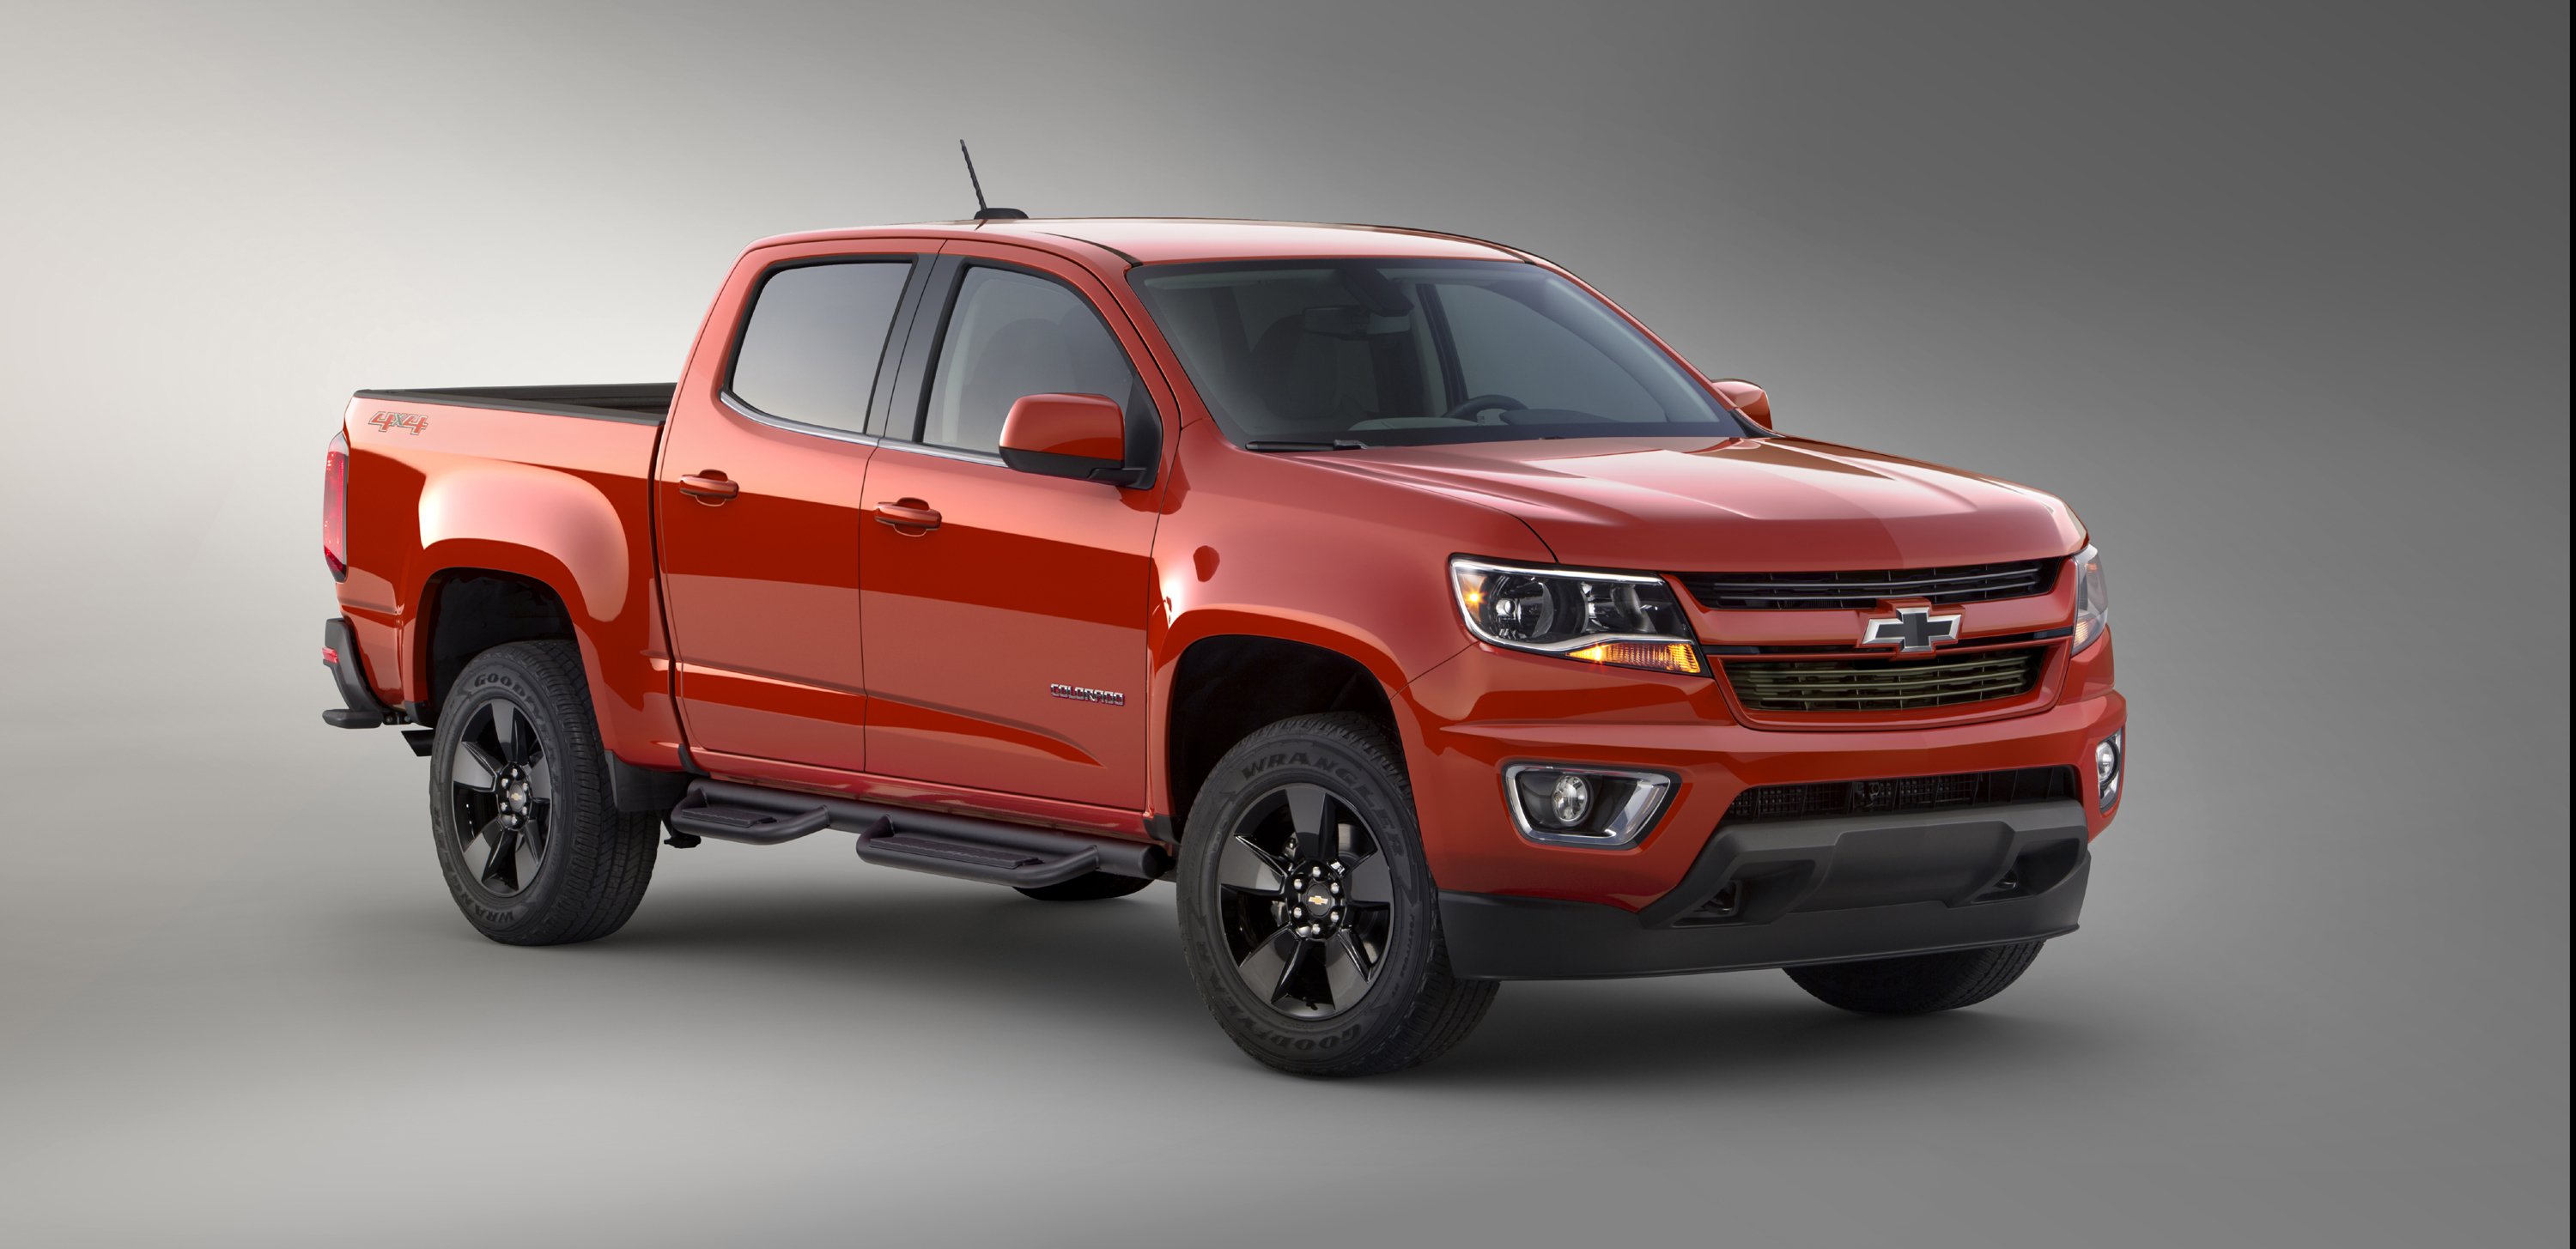 2015 Chevrolet Colorado Chevy Review Ratings Specs